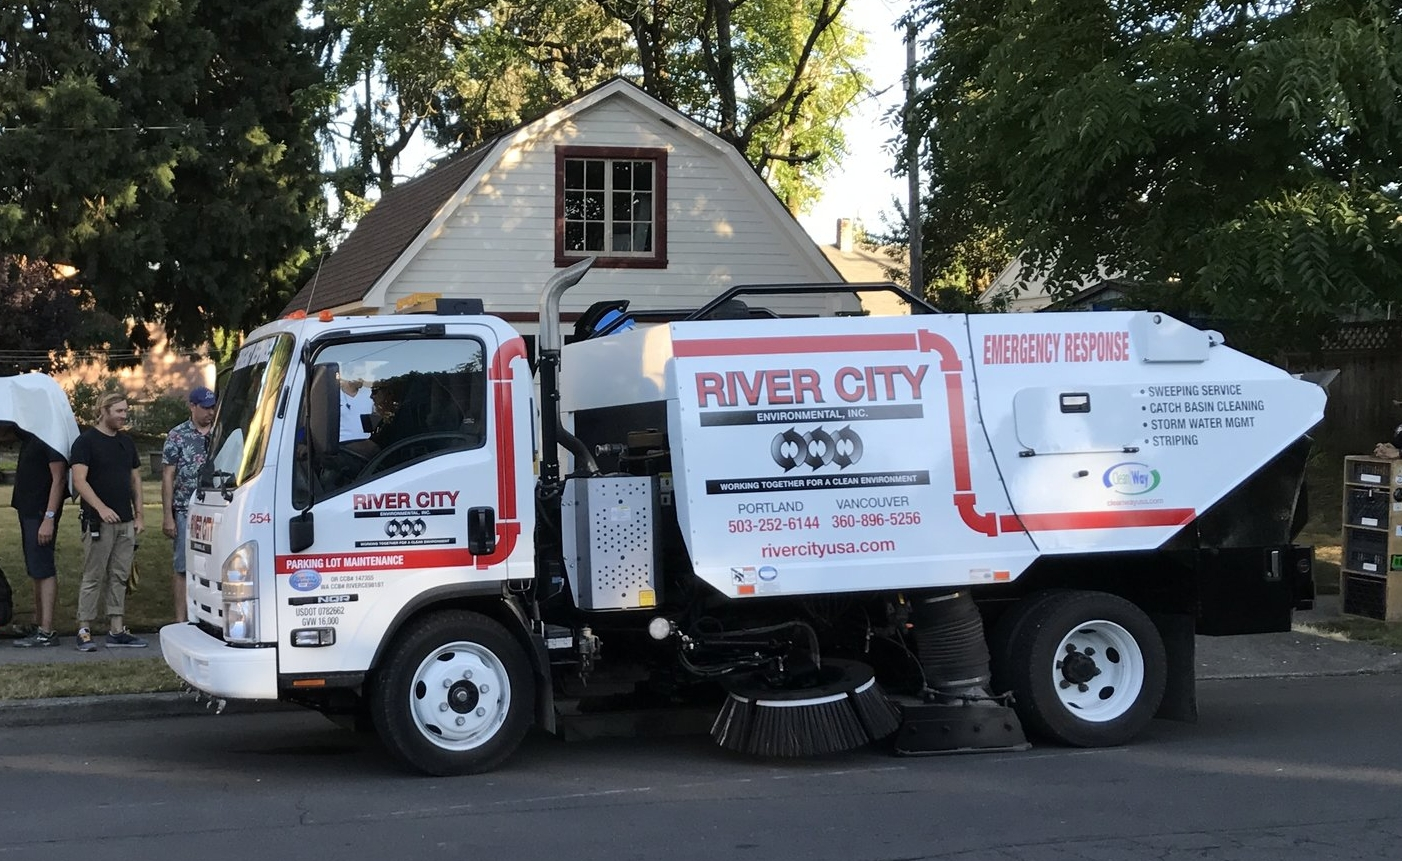 Our sweeper trucks will help make your lot safe